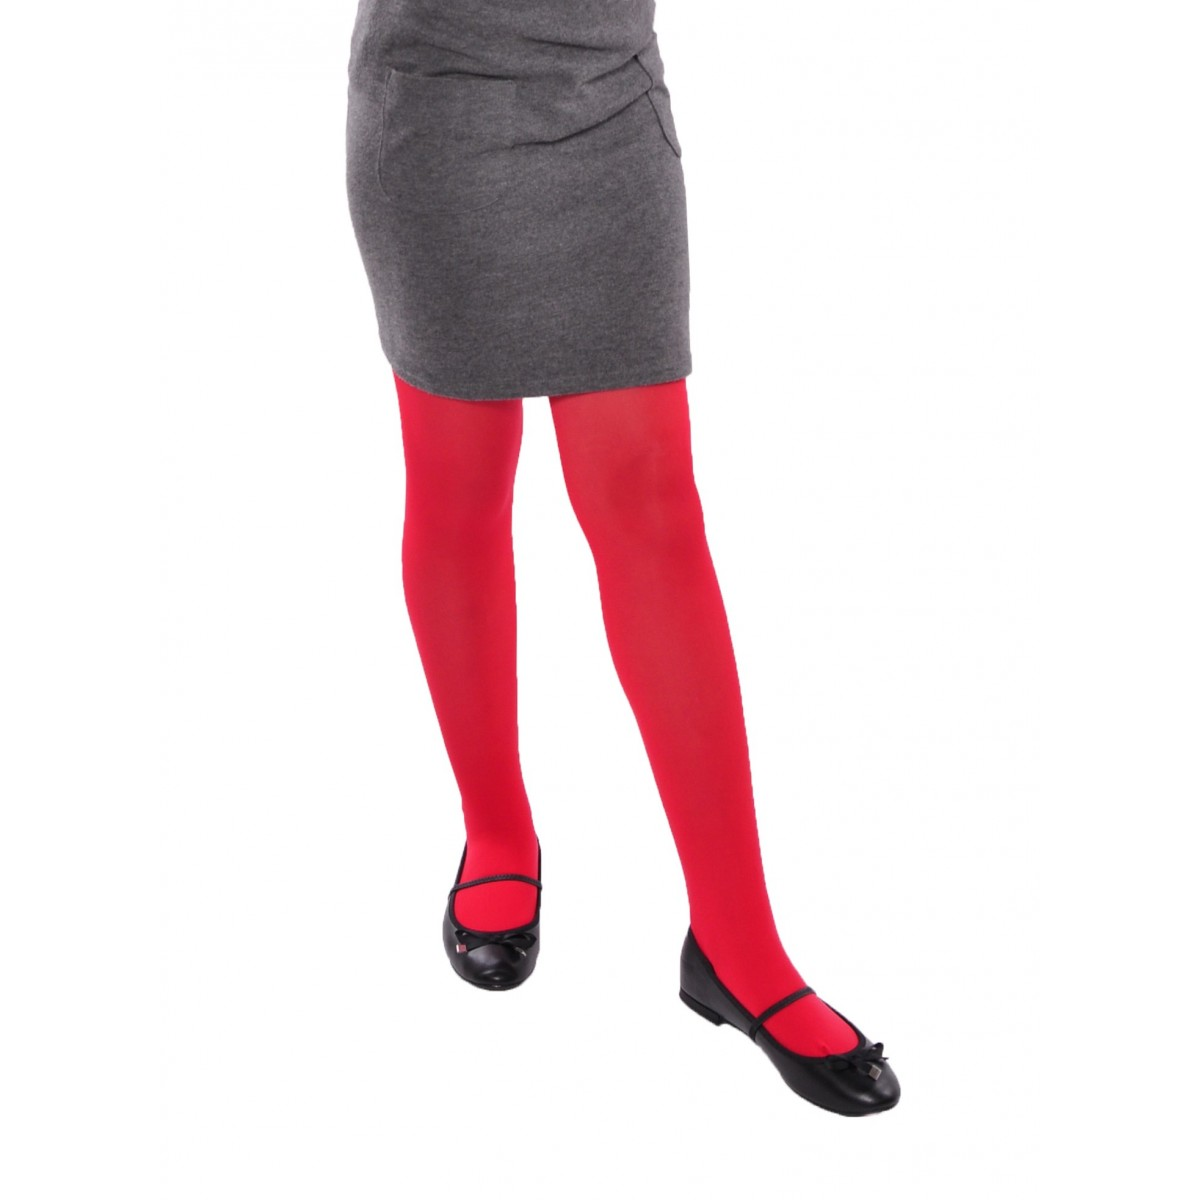 ec11c52bae869 School plain opaque girl's red tights Aurellie Aurellie-store ...